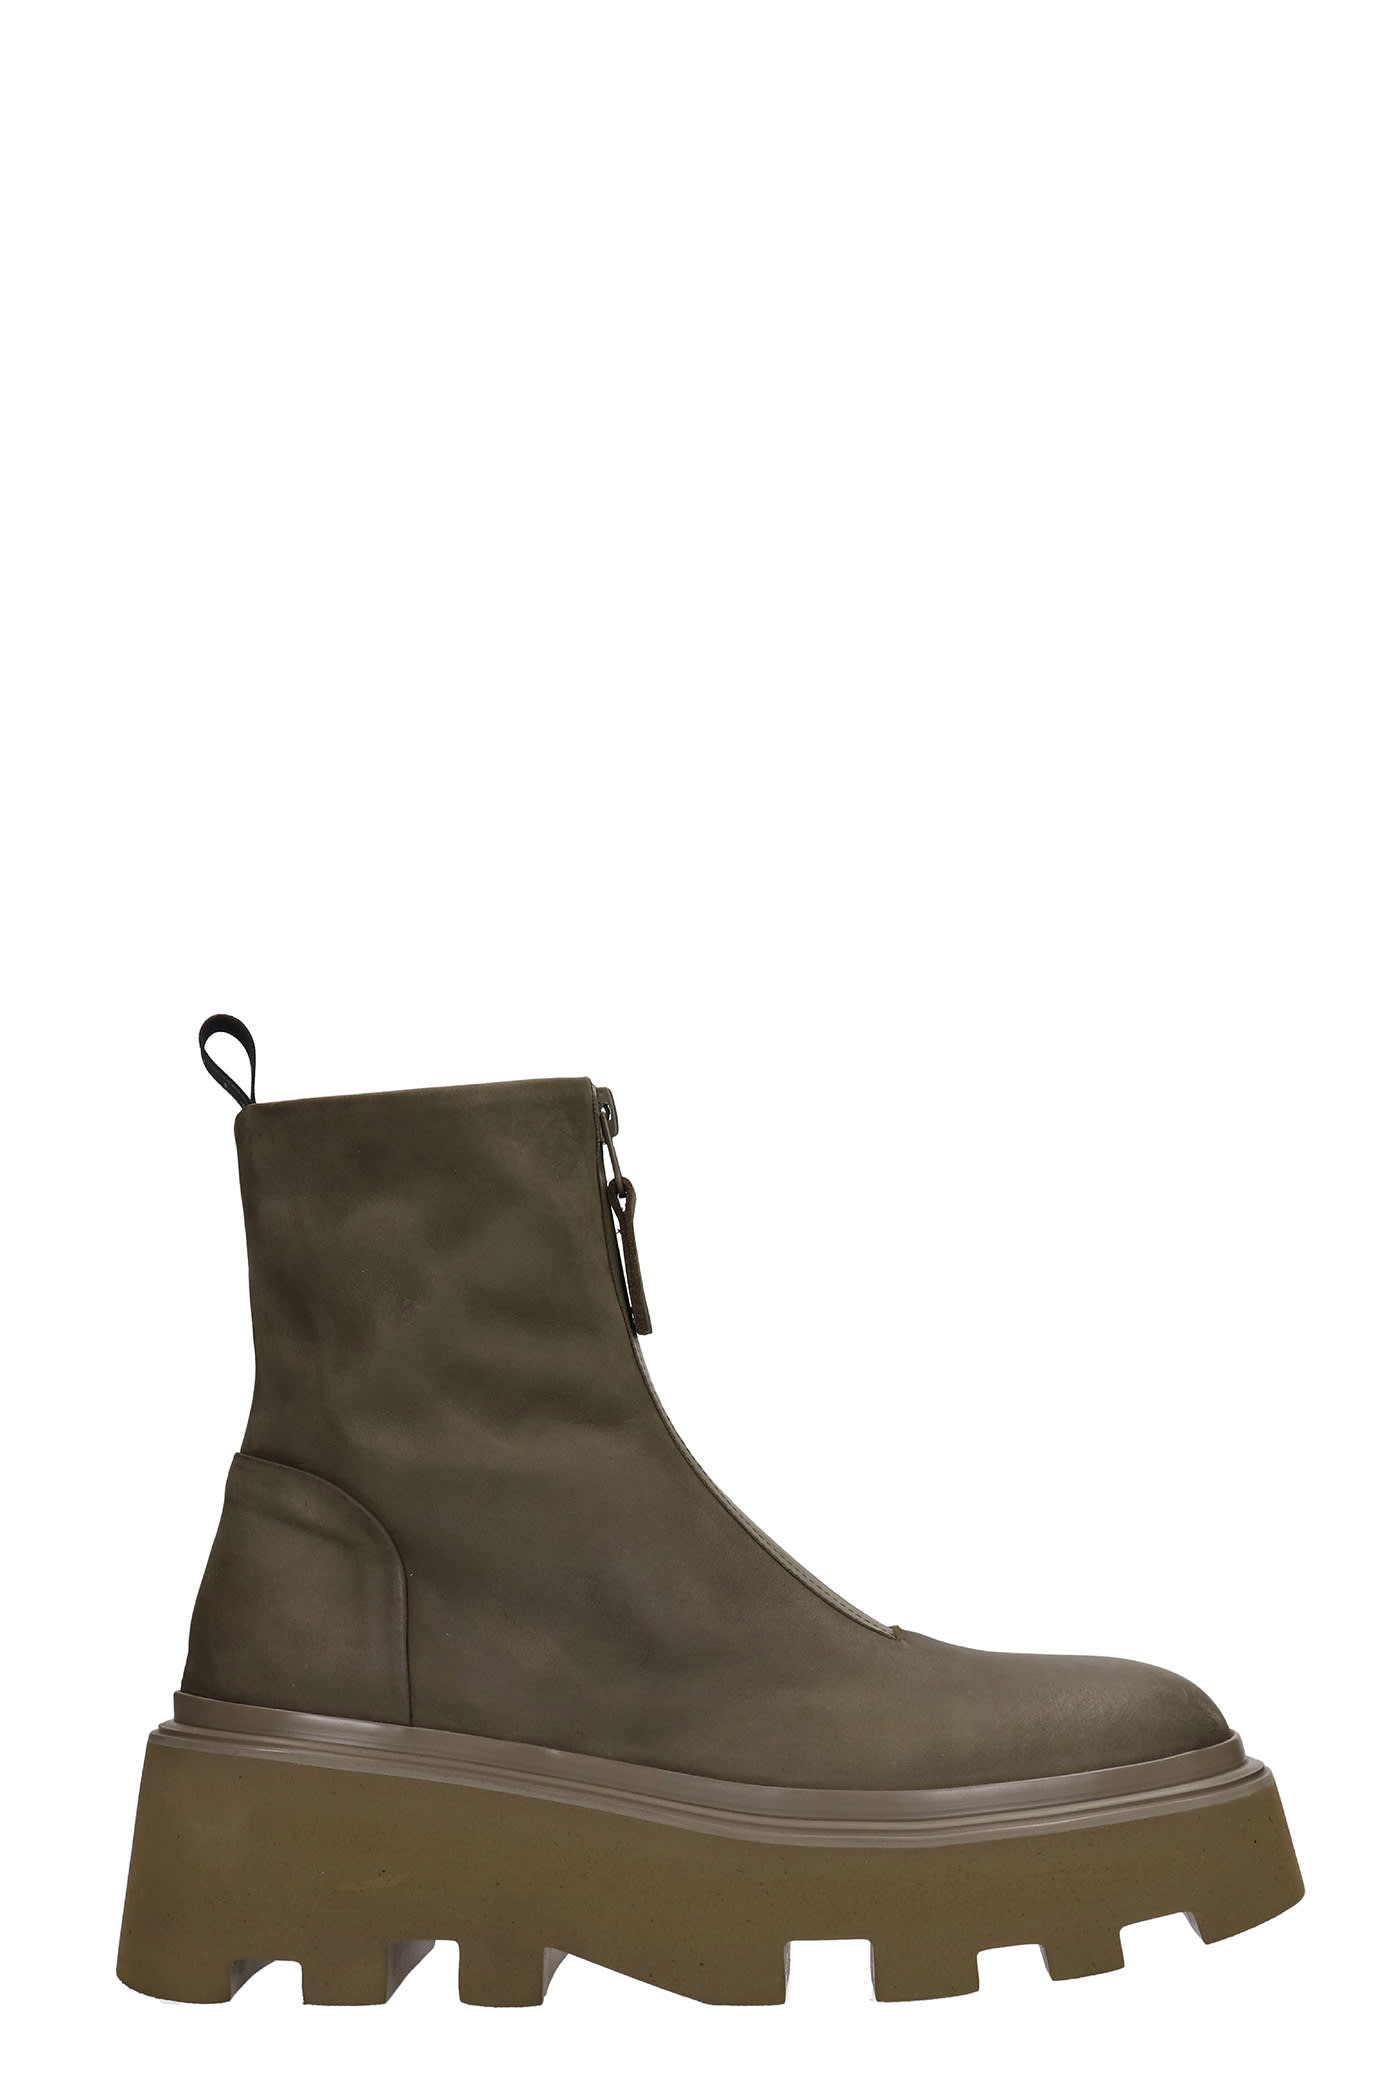 Low Heels Ankle Boots In Green Leather